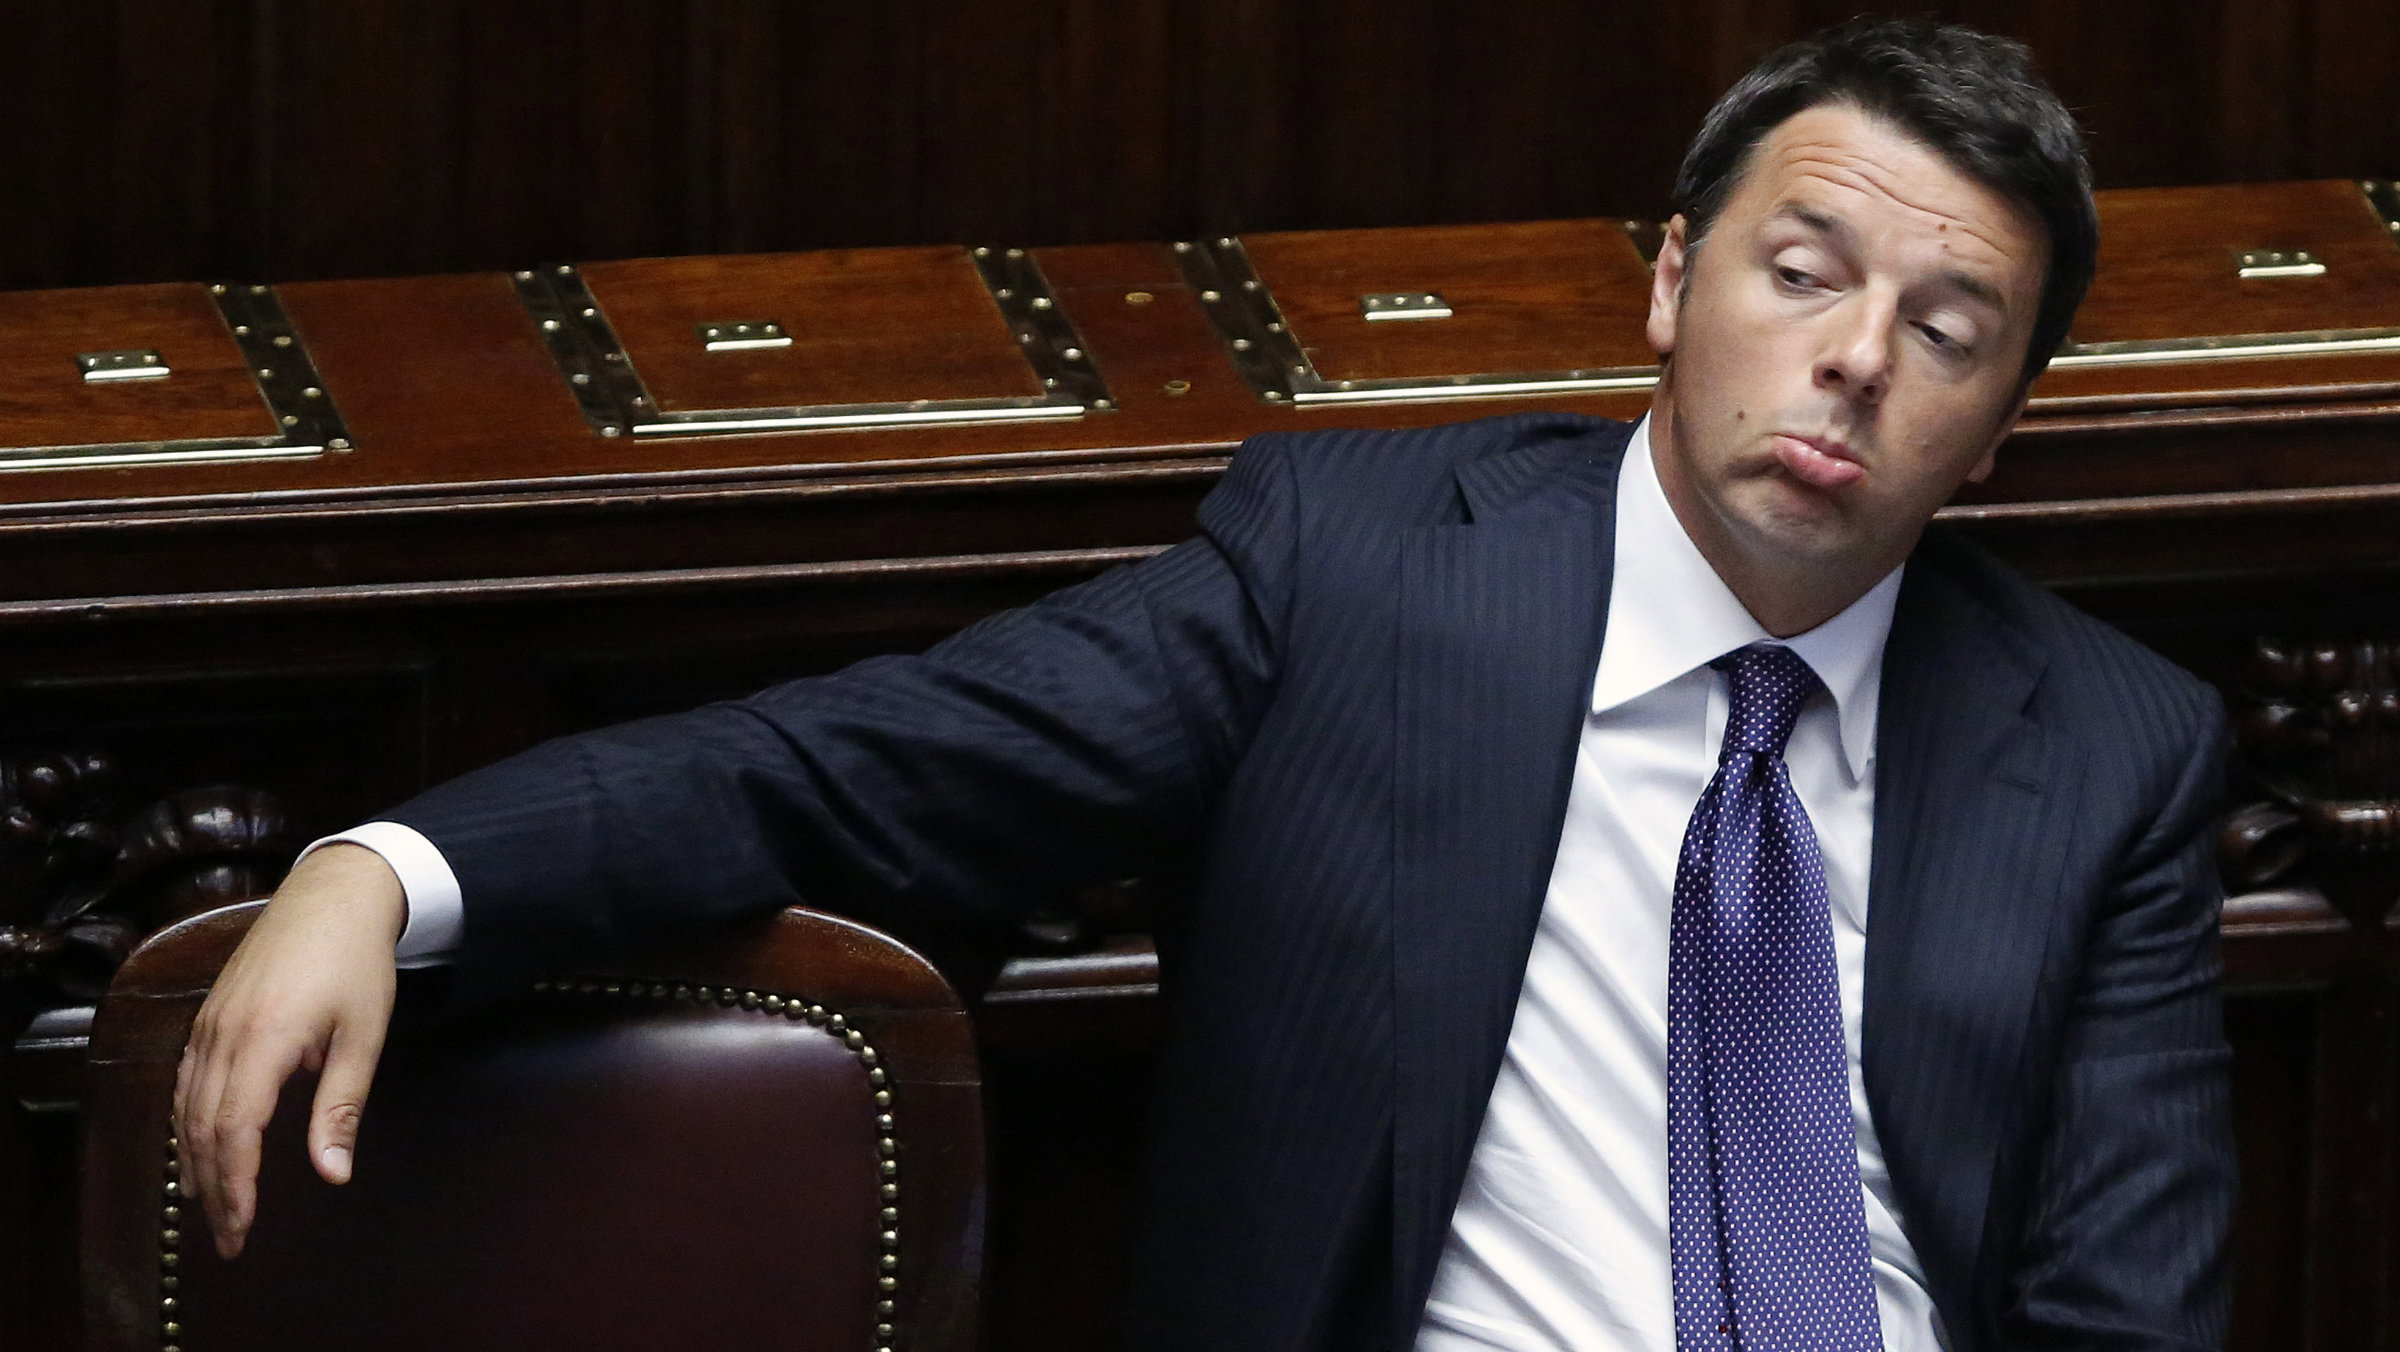 Italy's Prime Minister Matteo Renzi sits after delivering his speech at the Italian Parliament in Rome.